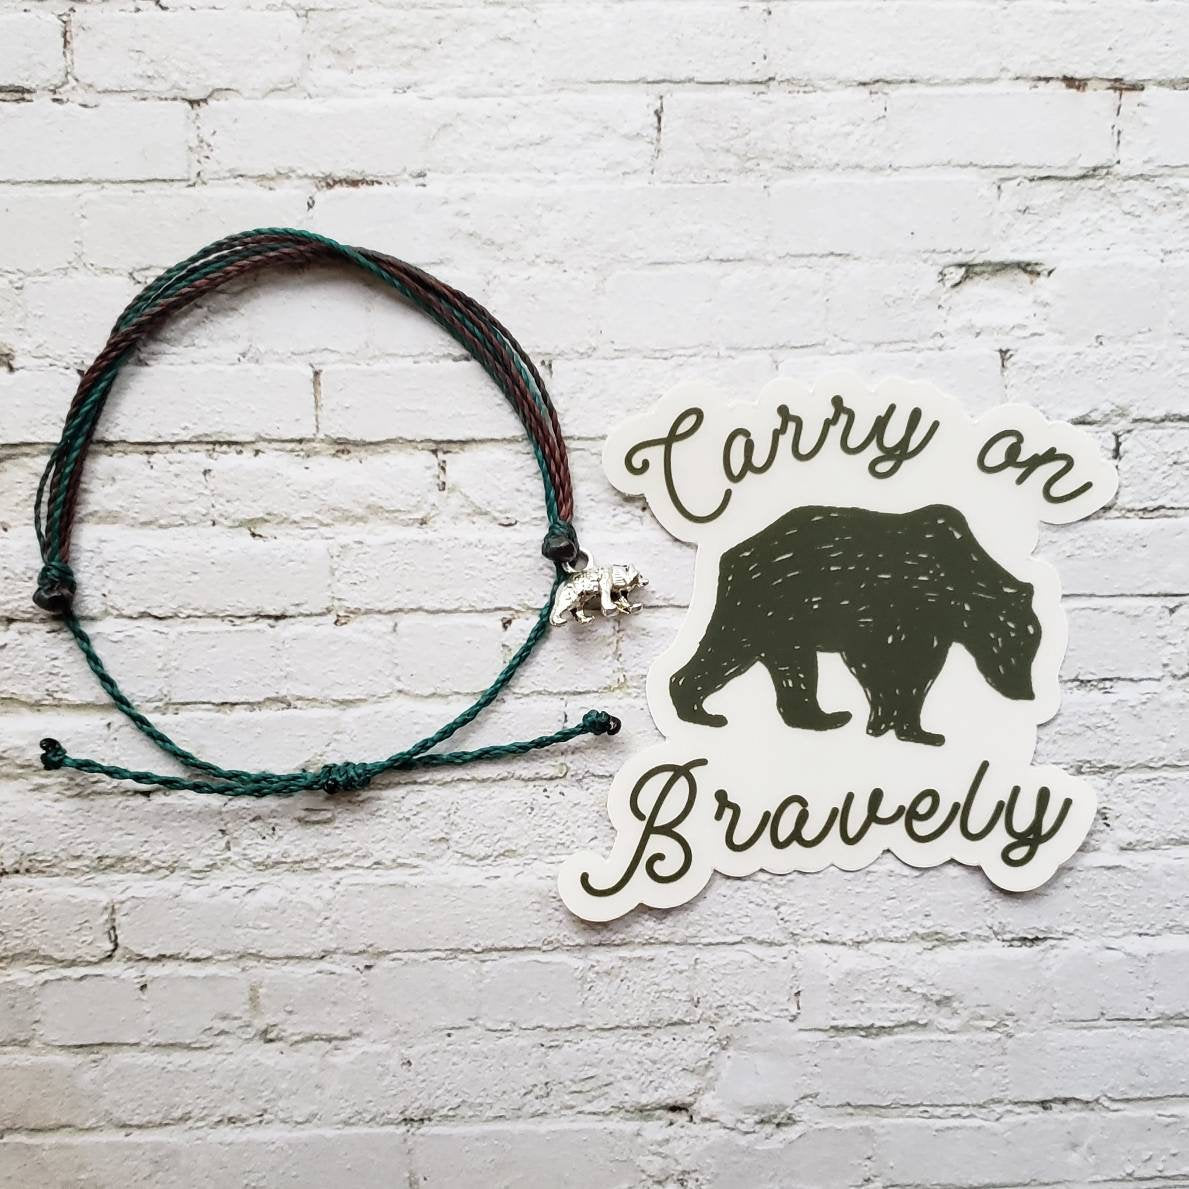 Wanderer Companion Bracelet | Carry on Bravely Wanderer Bear, Free Shipping USA